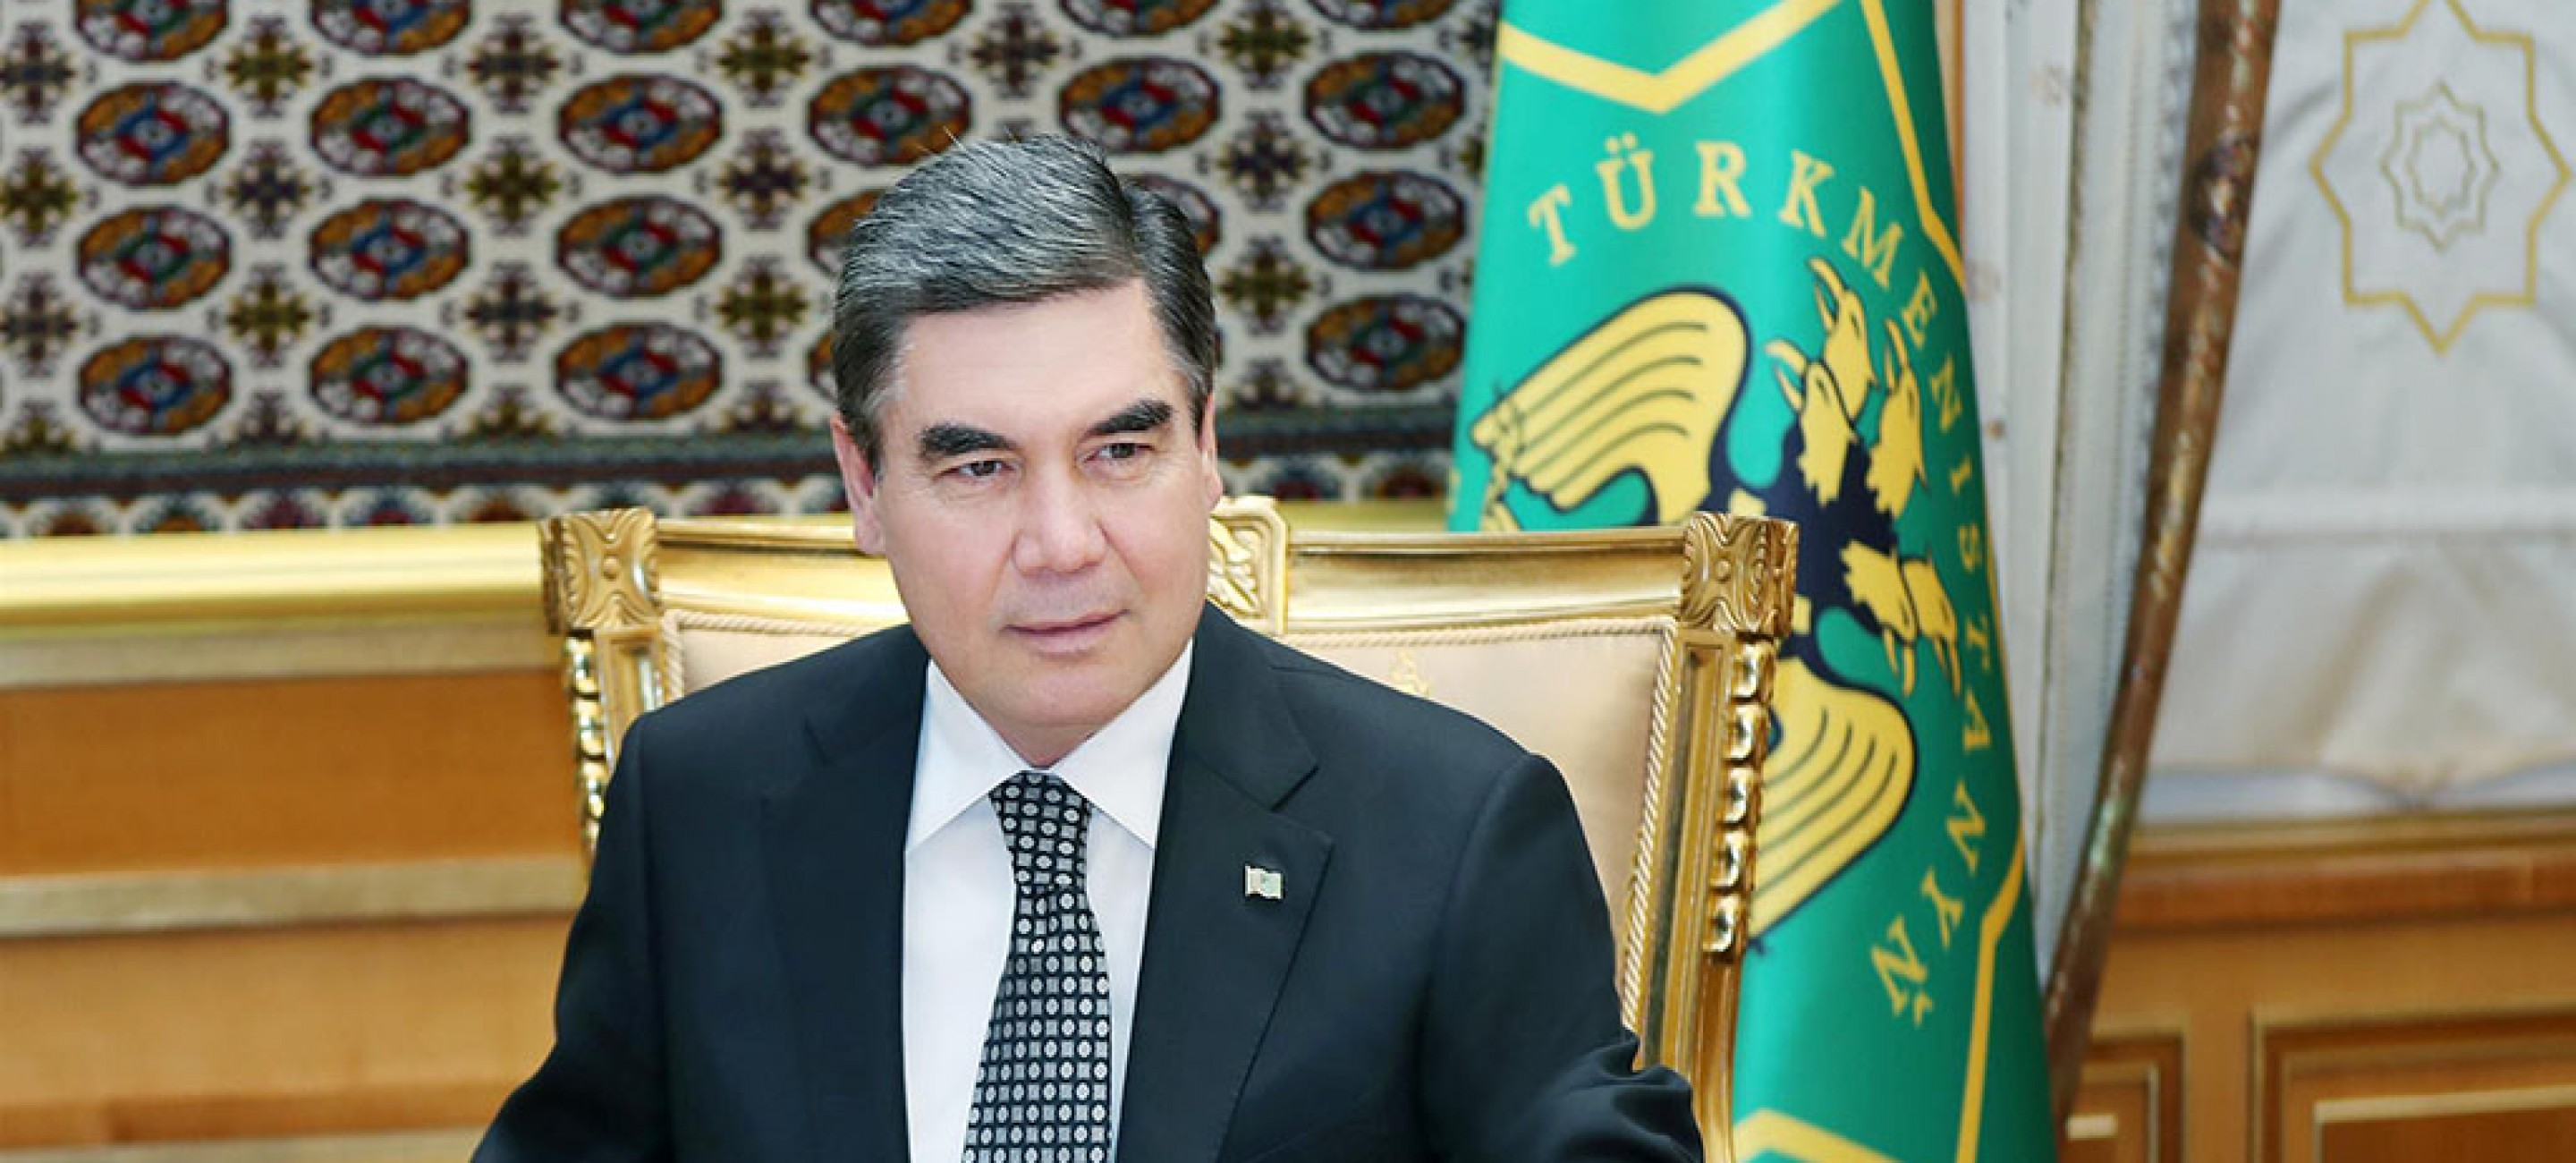 THE PRESIDENTS OF TURKMENISTAN AND UZBEKISTAN HAVE DISCUSSED THE PRIORITY AREAS OF COOPERATION OVER THE TELEPHONE